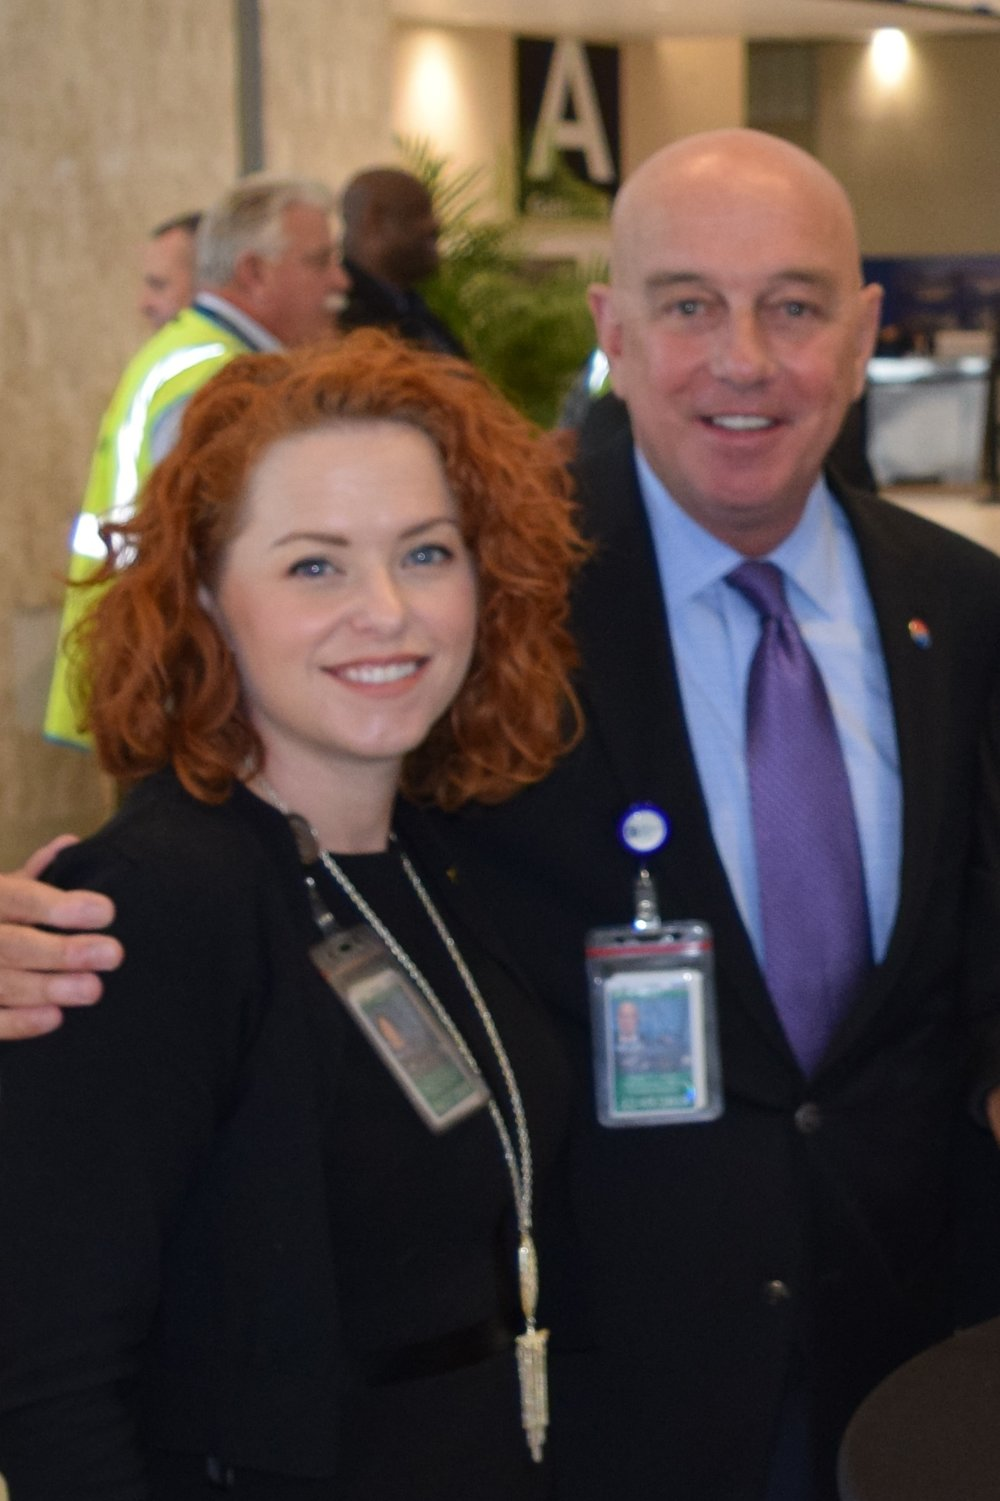 Kari Goetz & Joe Lopano after Press Conference, 9 May '17 - Copy.JPG